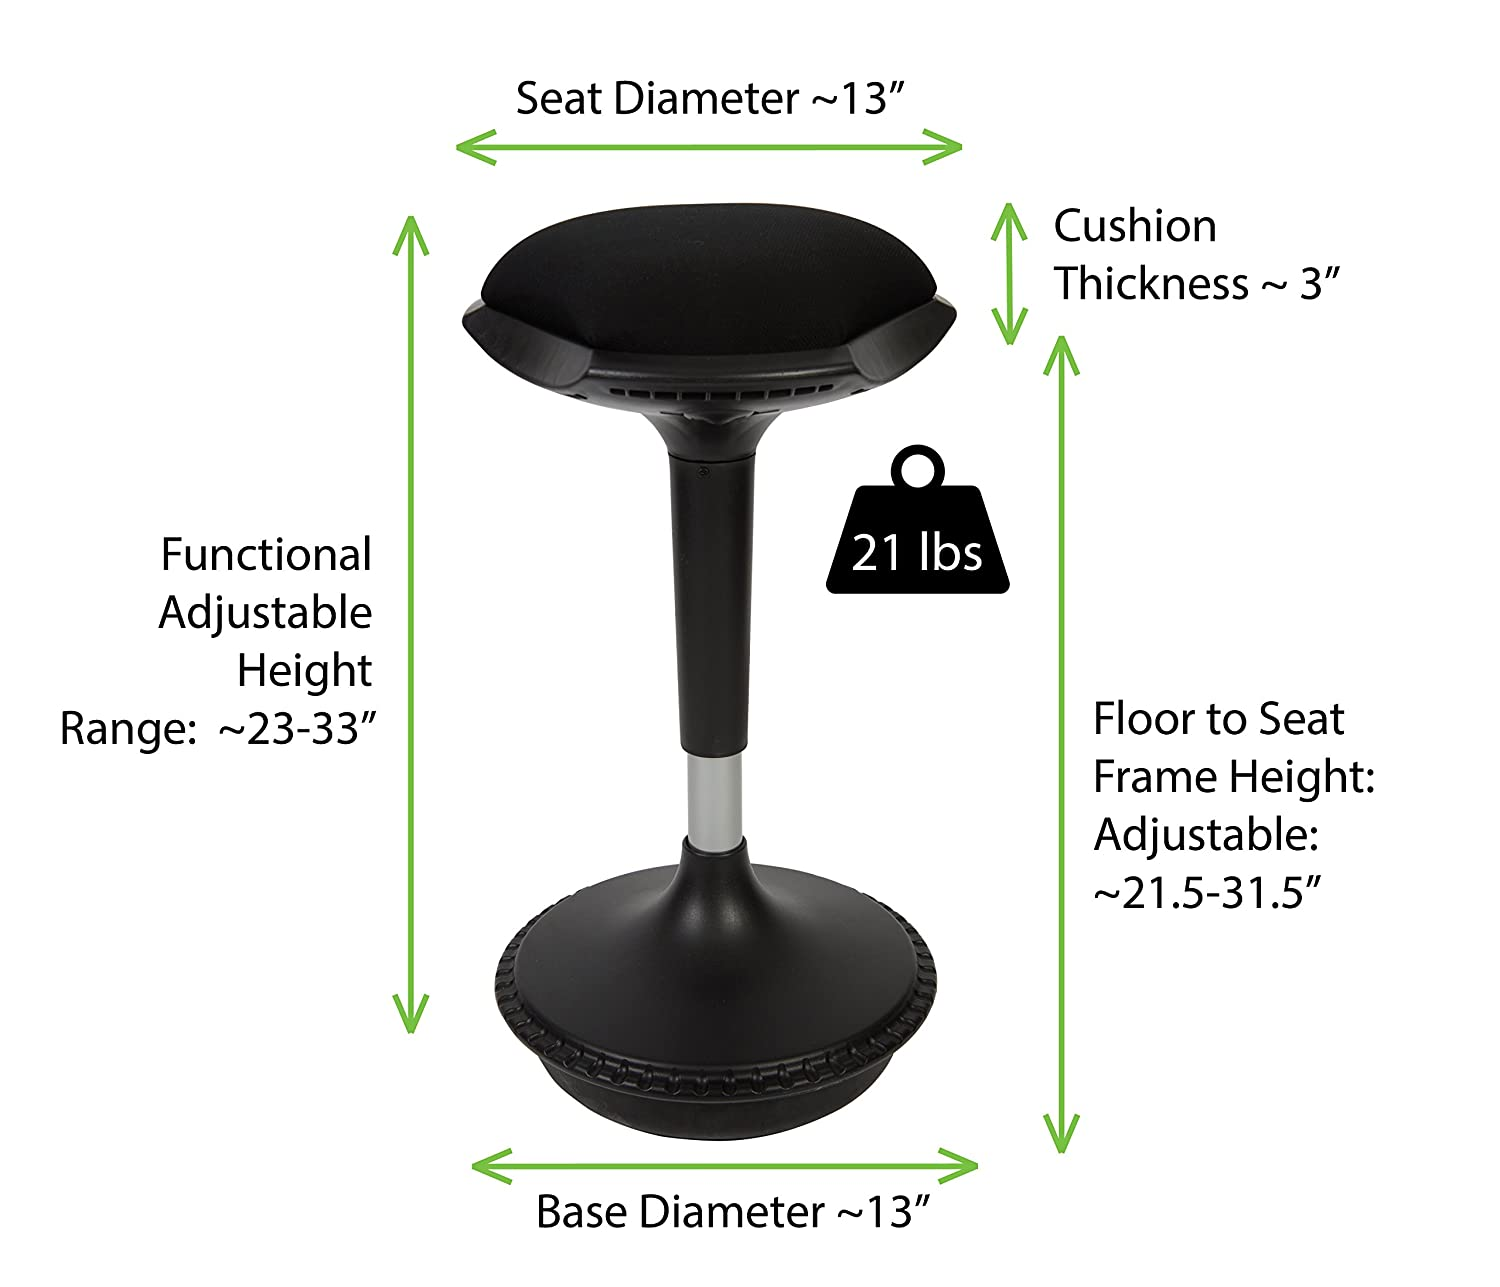 Amazon.com  Uncaged Ergonomics WOBBLE STOOL 2 Tall Adjustable Height Active Sitting Office Chair u0026 Ergonomic Standing Desk Swivel Stool Black (WSR-b) ...  sc 1 st  Amazon.com & Amazon.com : Uncaged Ergonomics WOBBLE STOOL 2 Tall Adjustable ... islam-shia.org